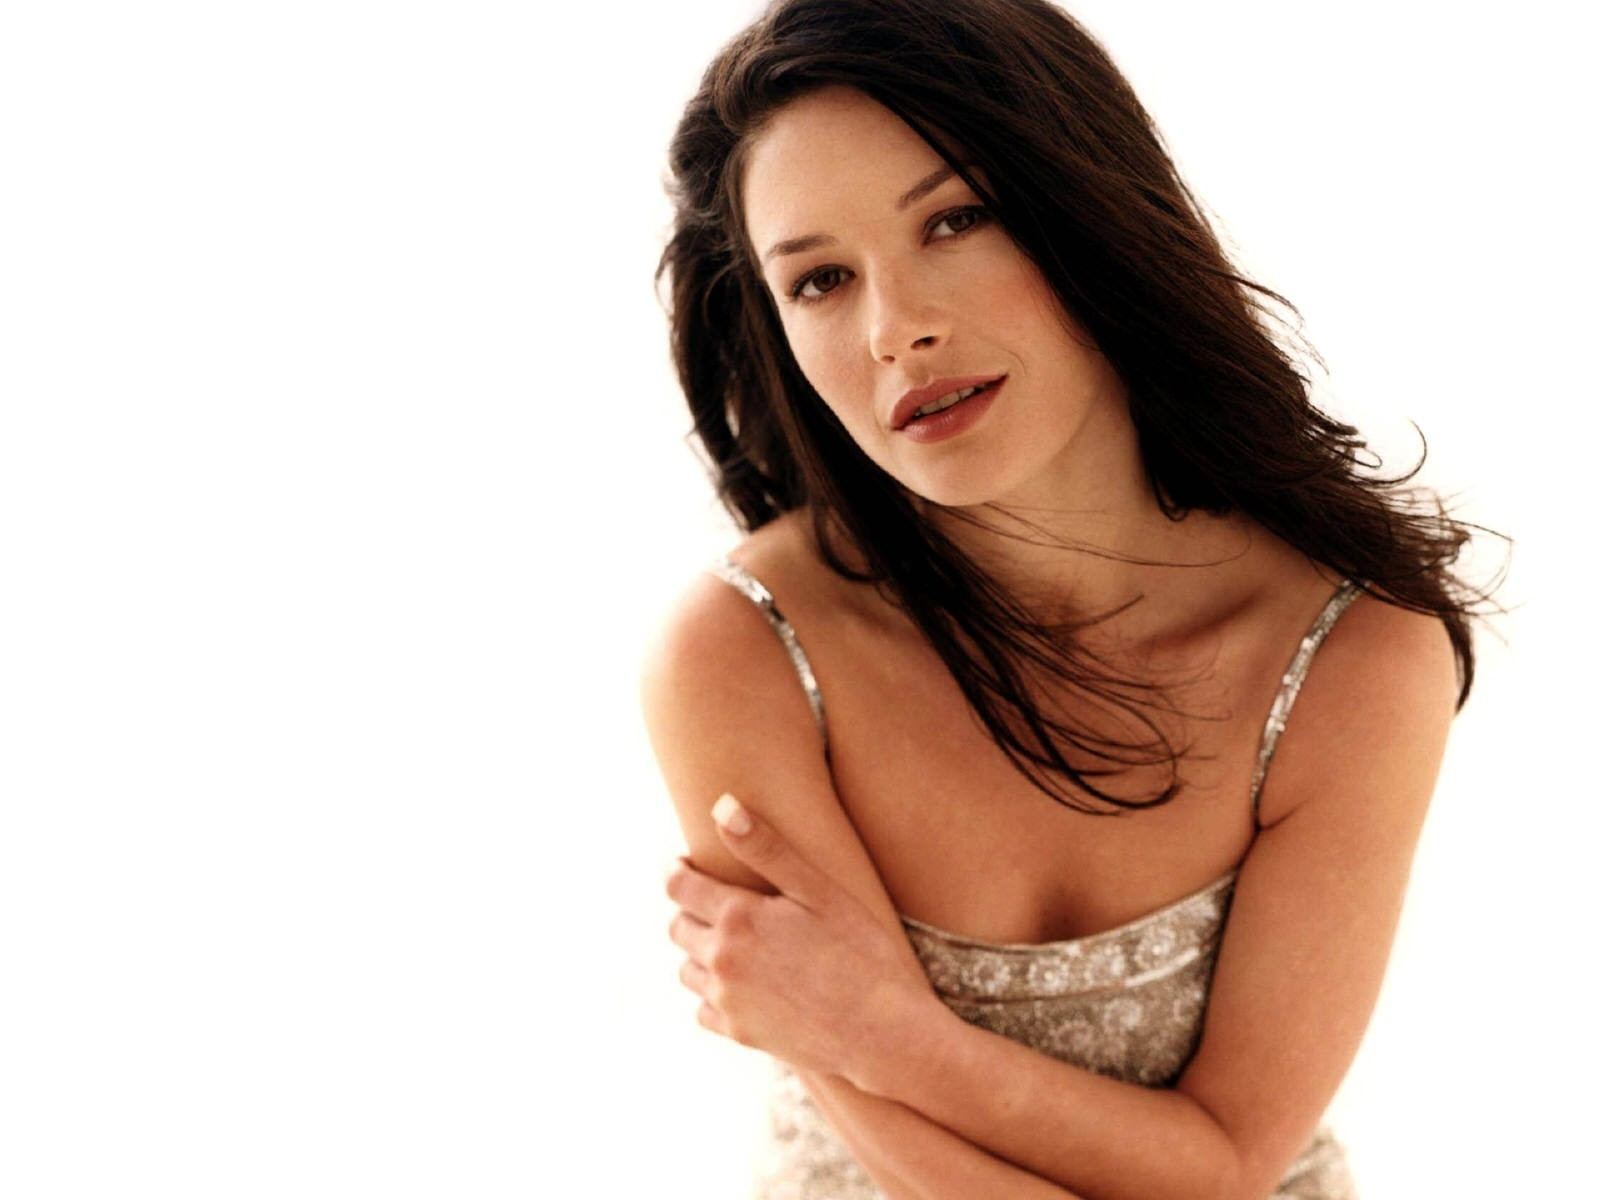 Wallpaper di Catherine Zeta-Jones 10